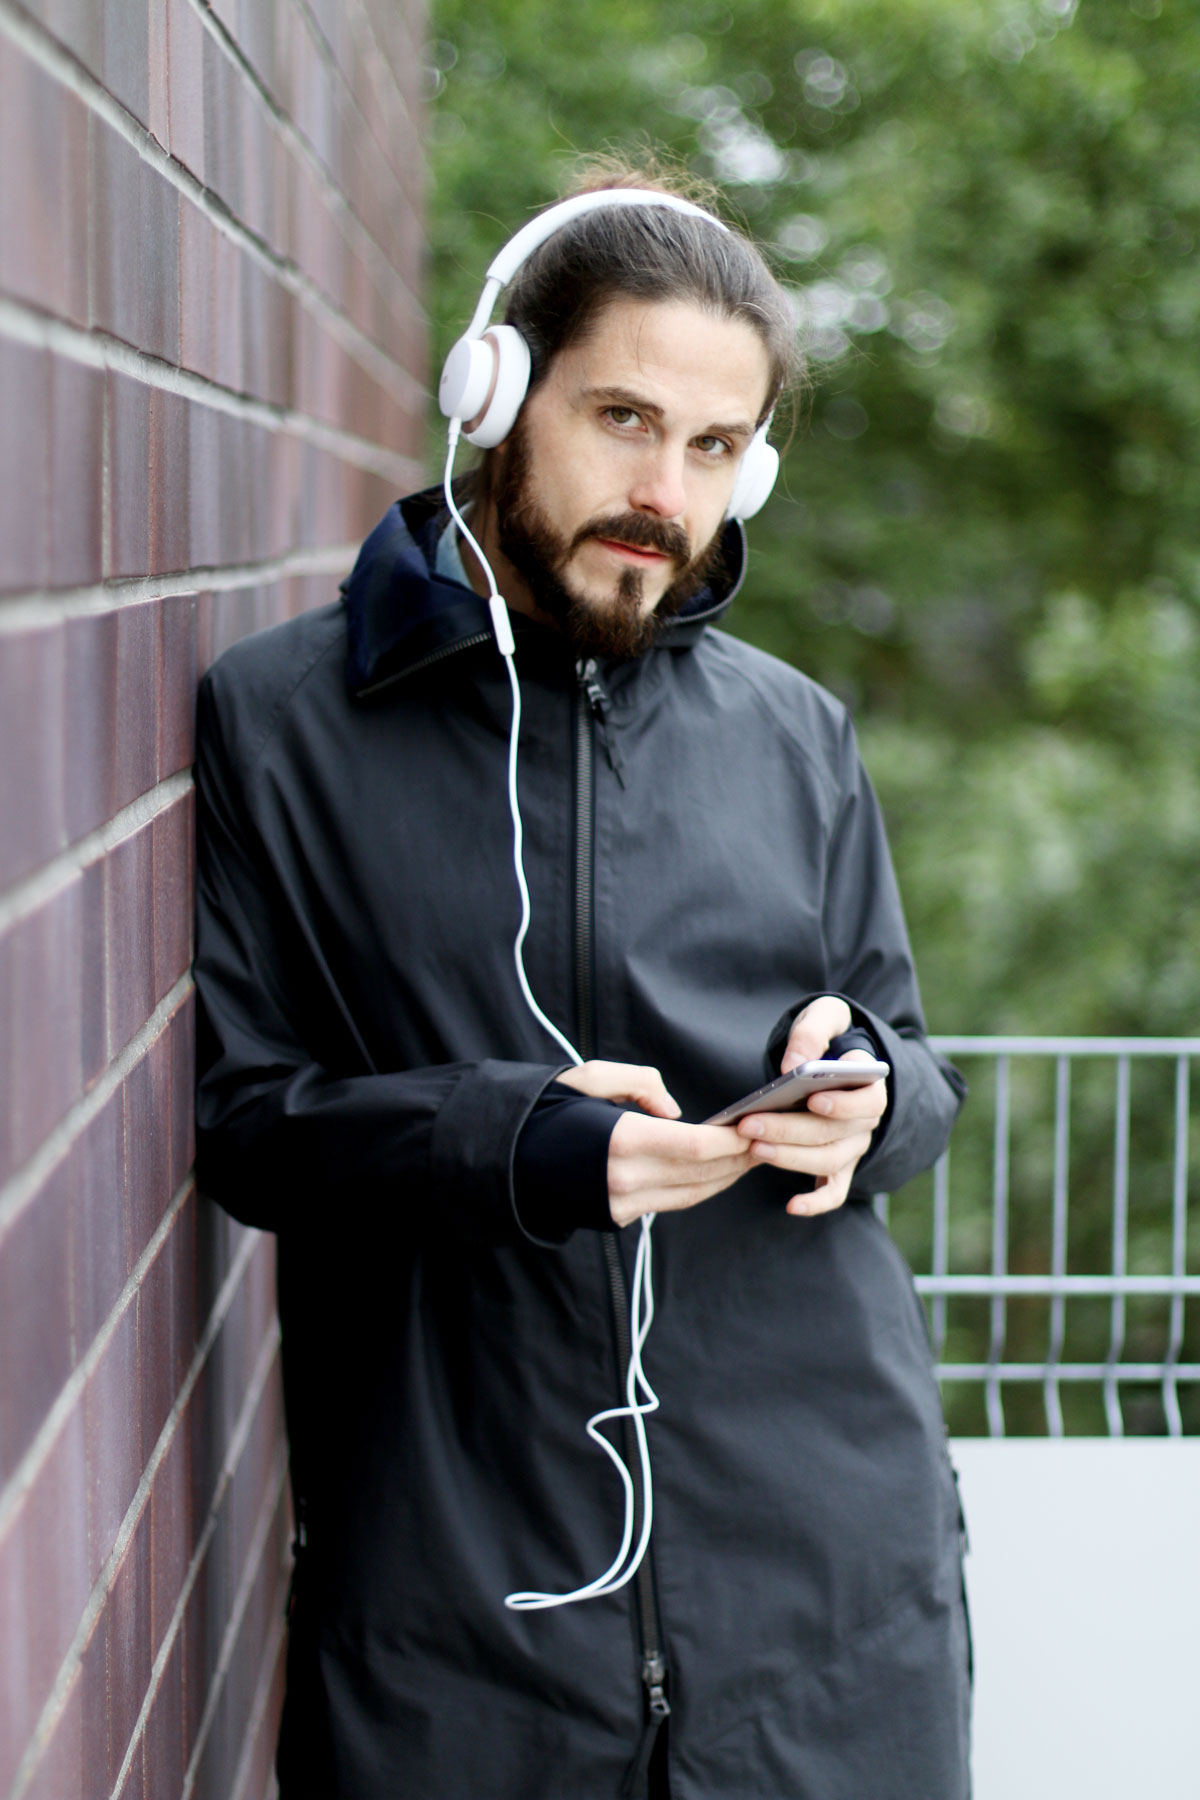 lifestyle-jays-headphones-malefashion-maennermode-blog-parka-11-by-bbs